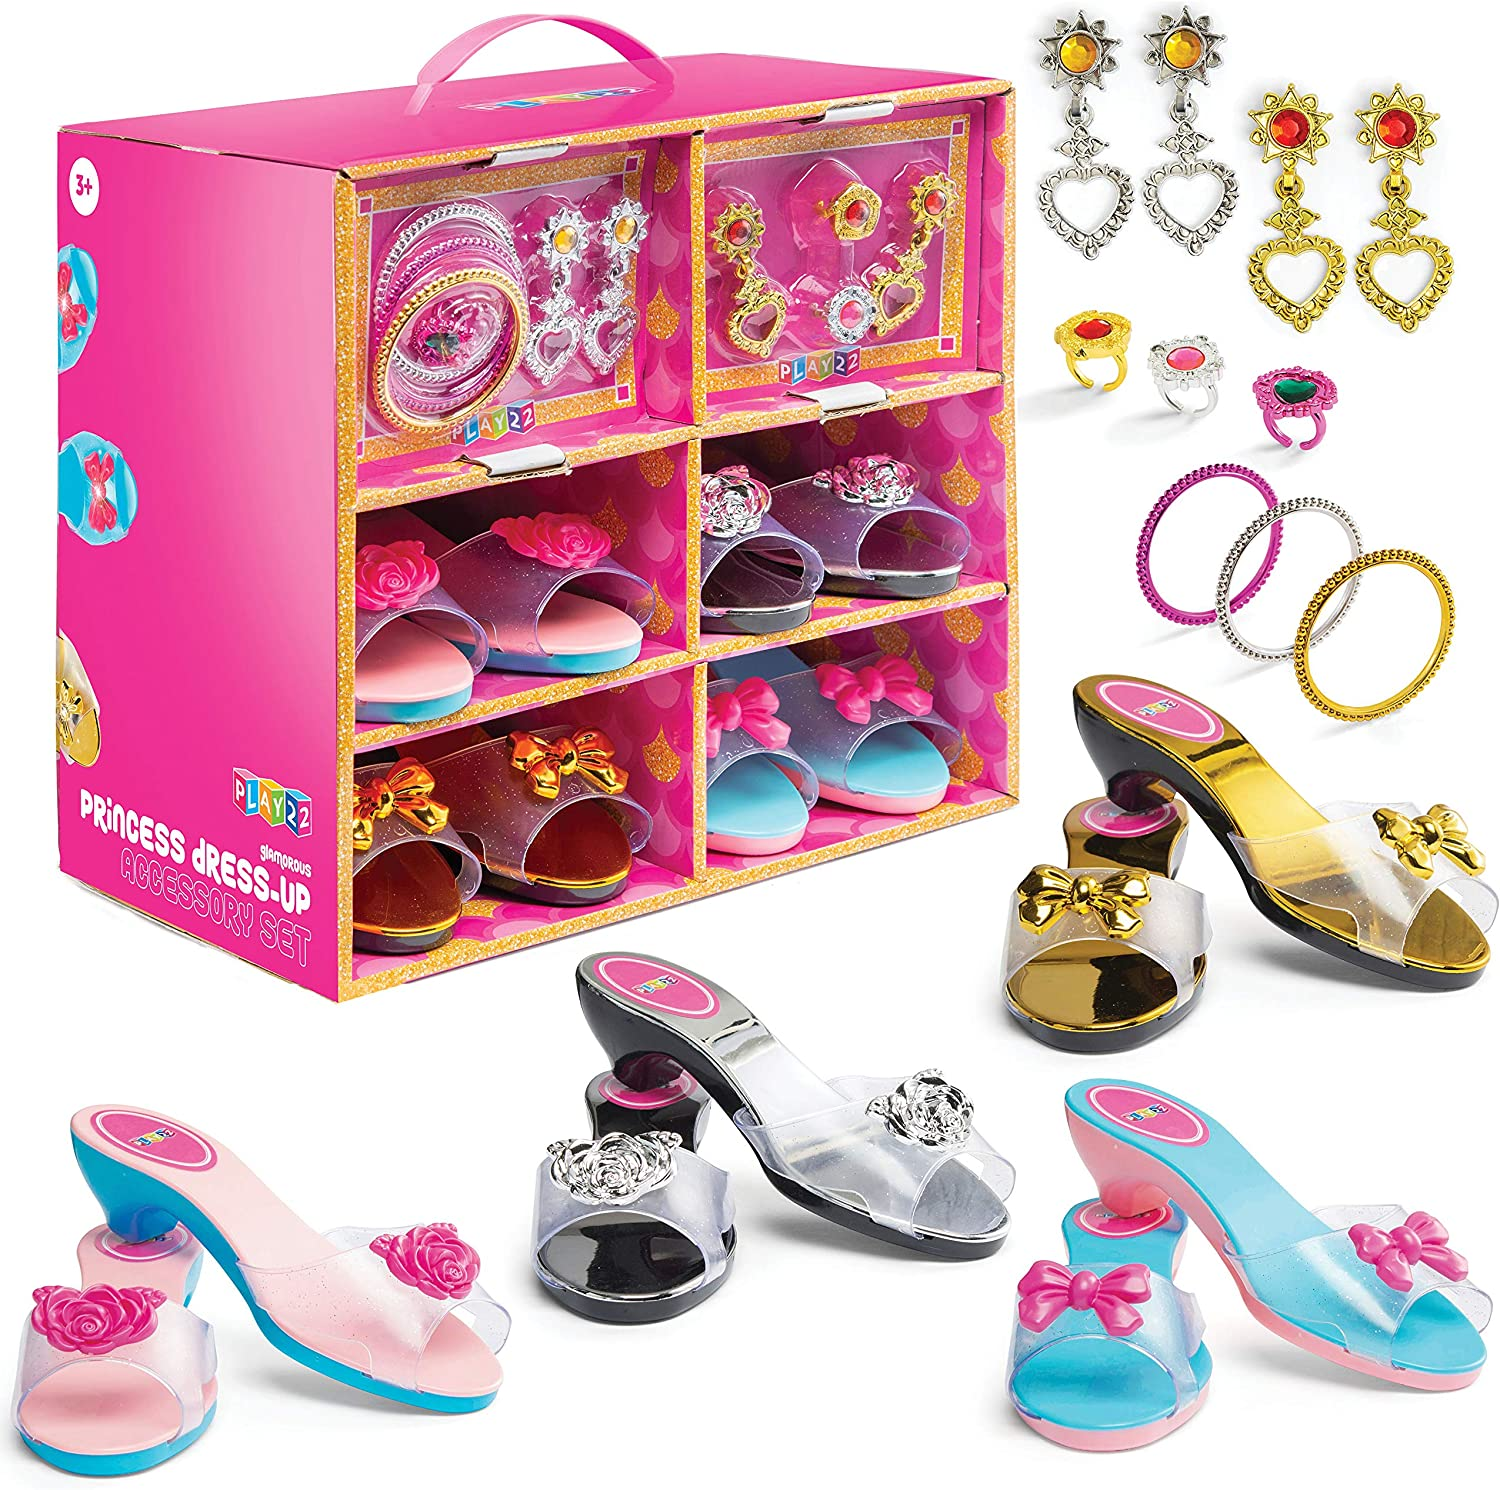 Play8 Princess Girls Dress Up Shoes And Jewelry Boutique 8 Set – 8 Pairs  Pretend Play Shoes For Little Girls, 8 Earrings, 8 Bracelets, 8 Rings -